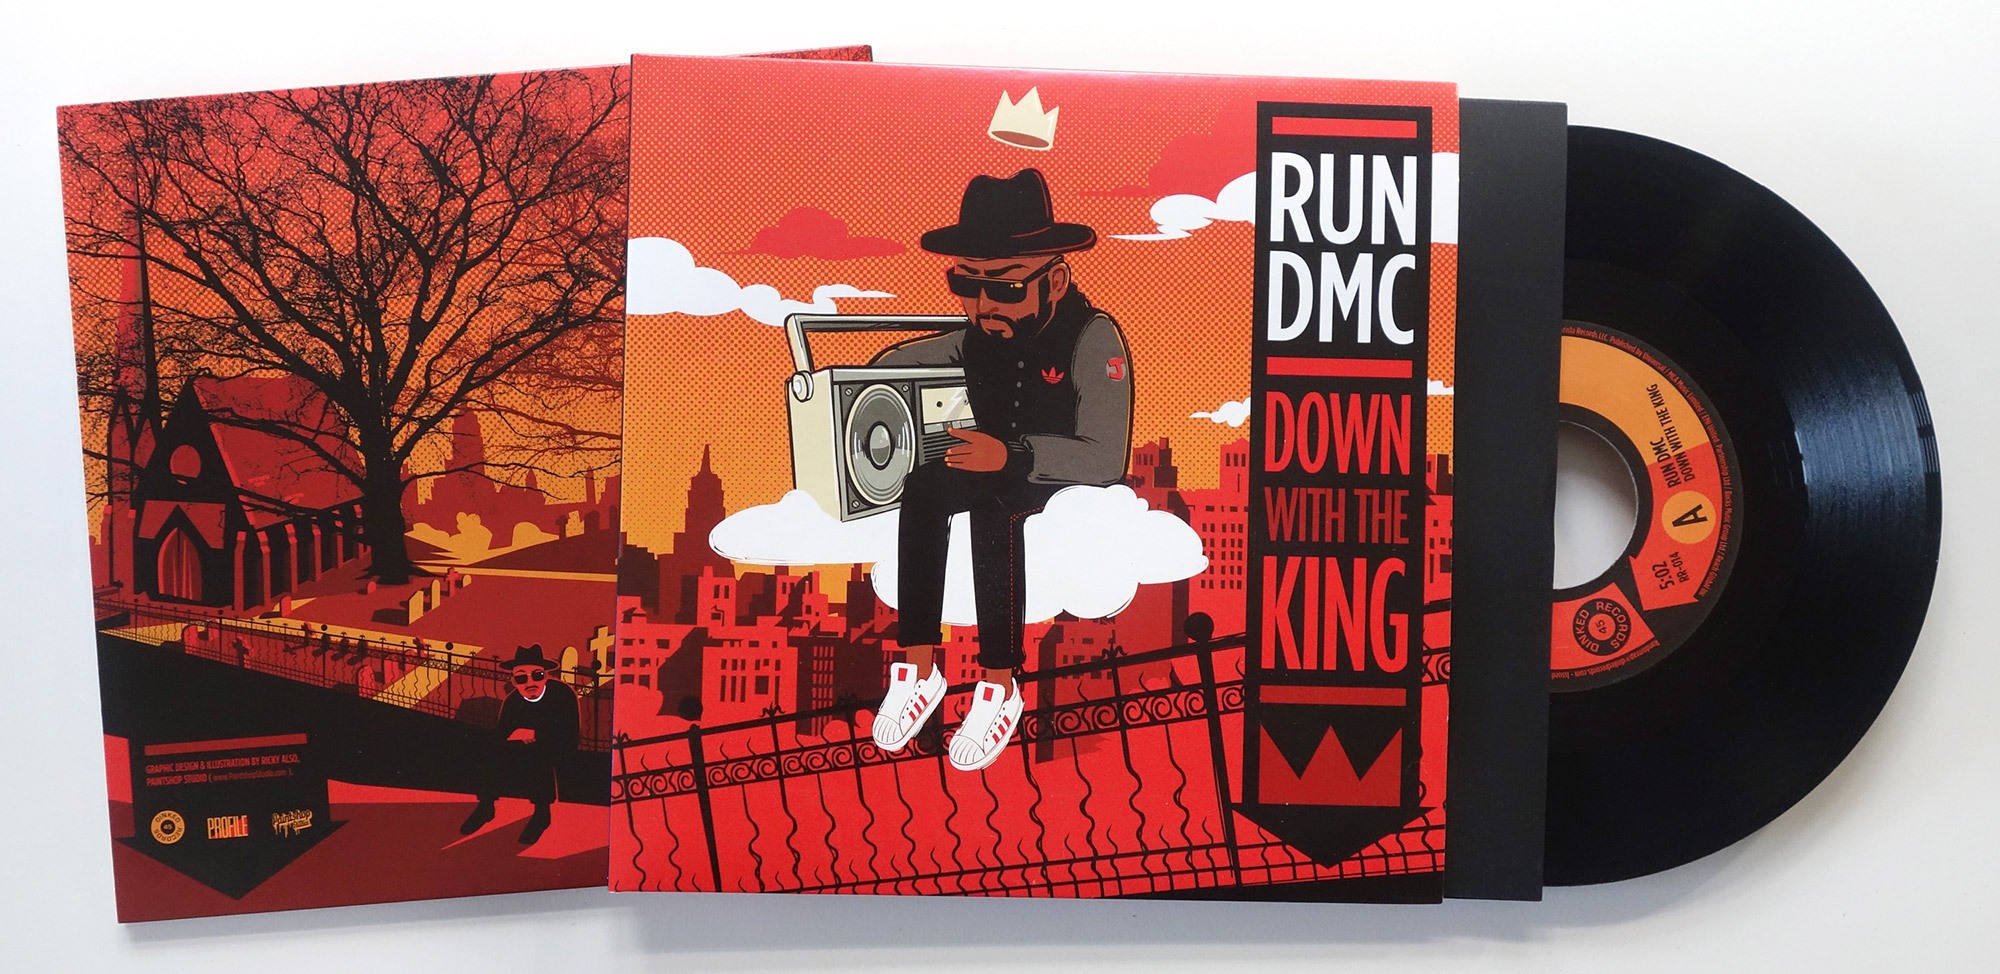 RUN DMC Down with the King Album Record Sleeve Design and Illustration by Paintshop Studio